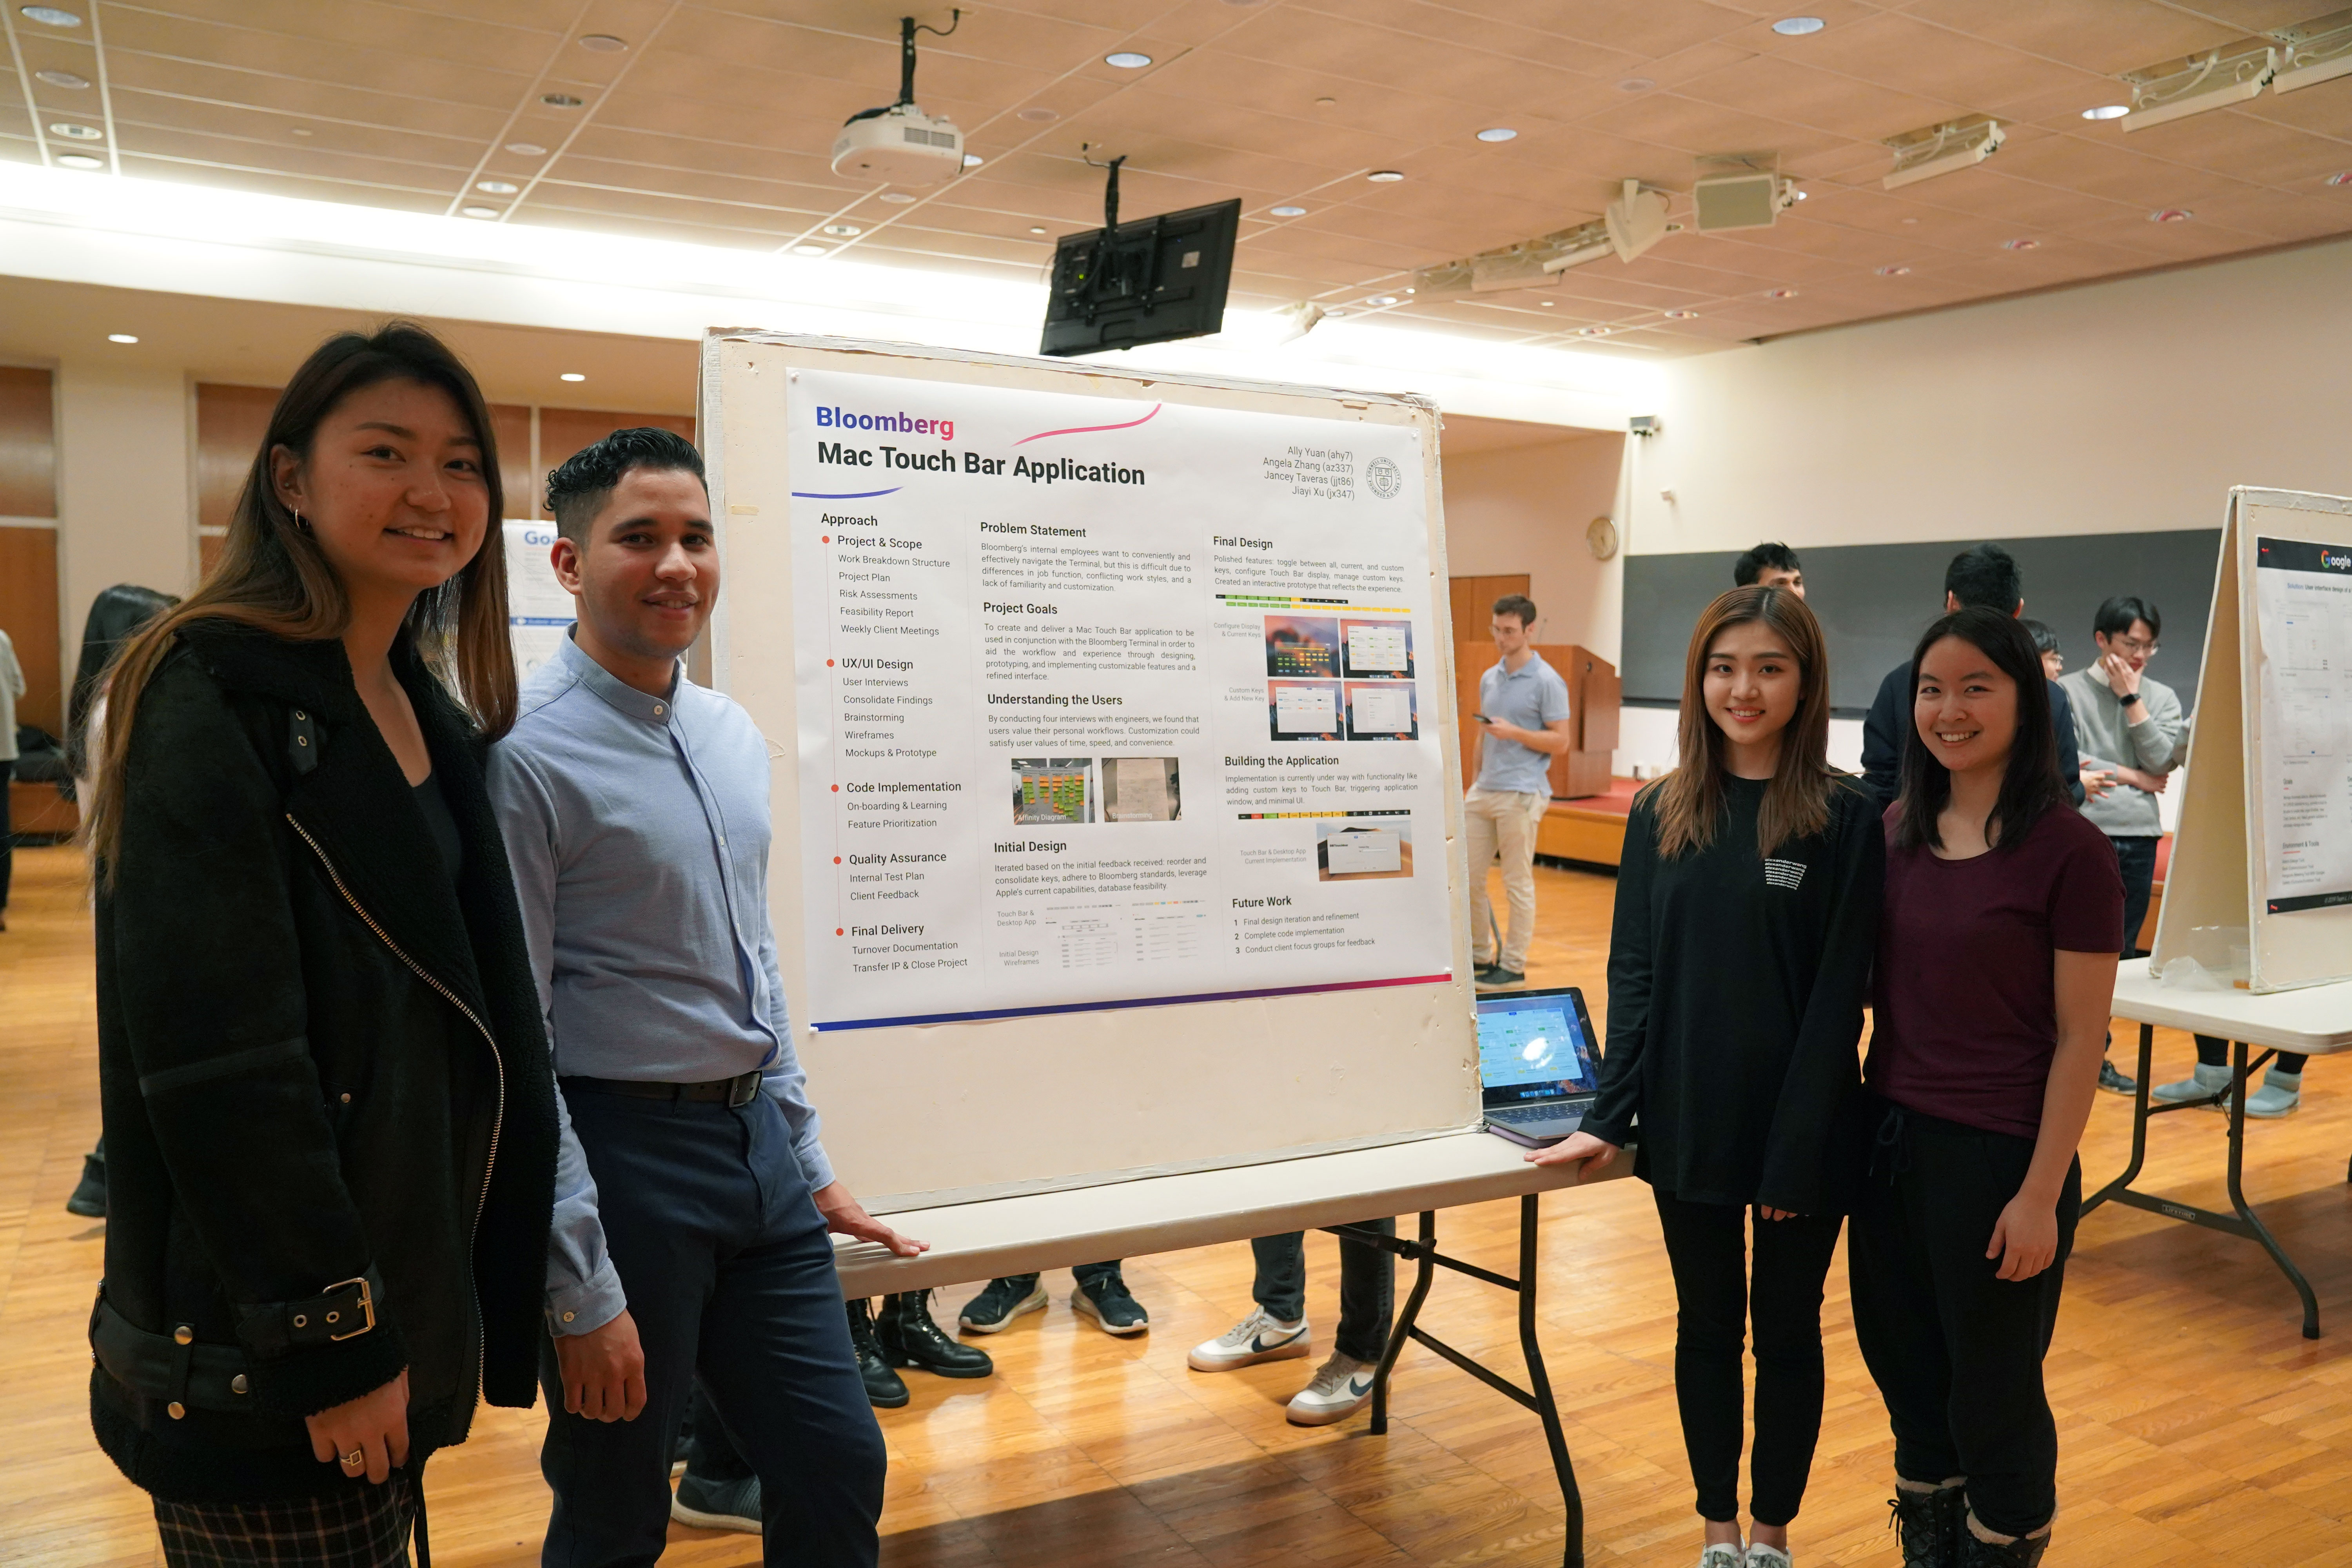 Working with Bloomberg, this Info Sci MPS team researched, designed, built and implemented a Touch Bar application with quick keys that would seamlessly integrate with Bloomberg's current computer system.